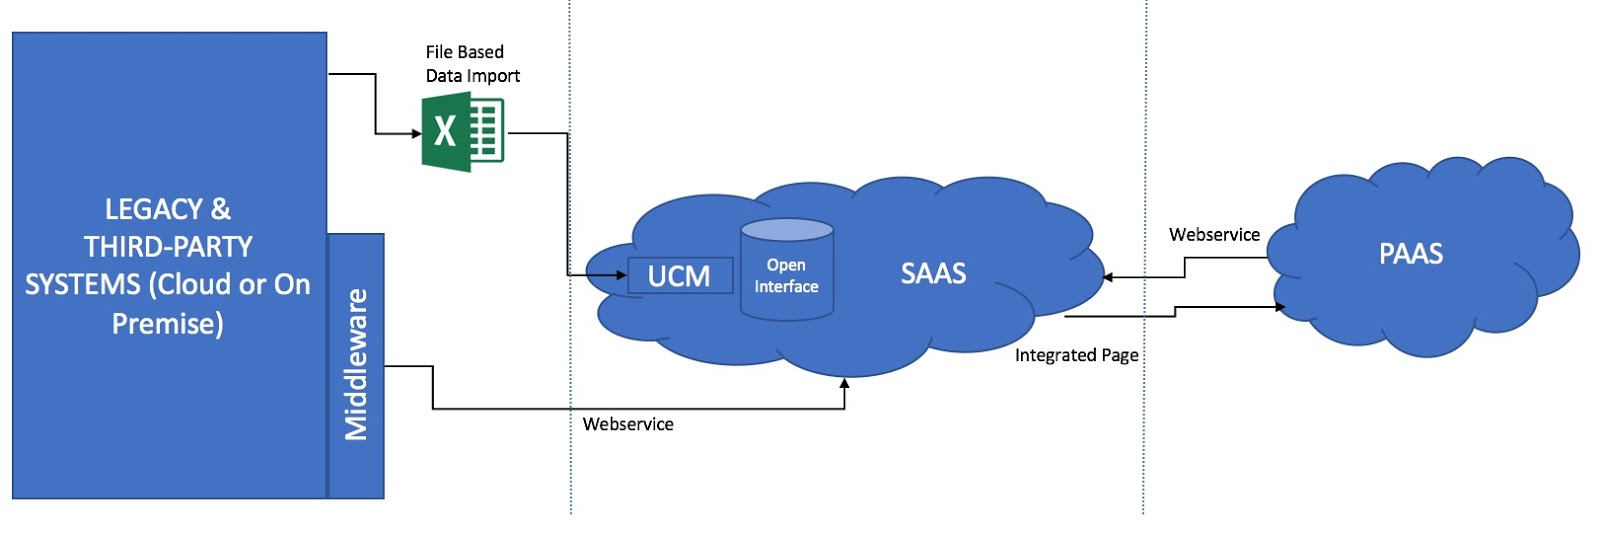 hight resolution of next to file based data import the saas environment also provides several webservices which can be invoked directly from the external application